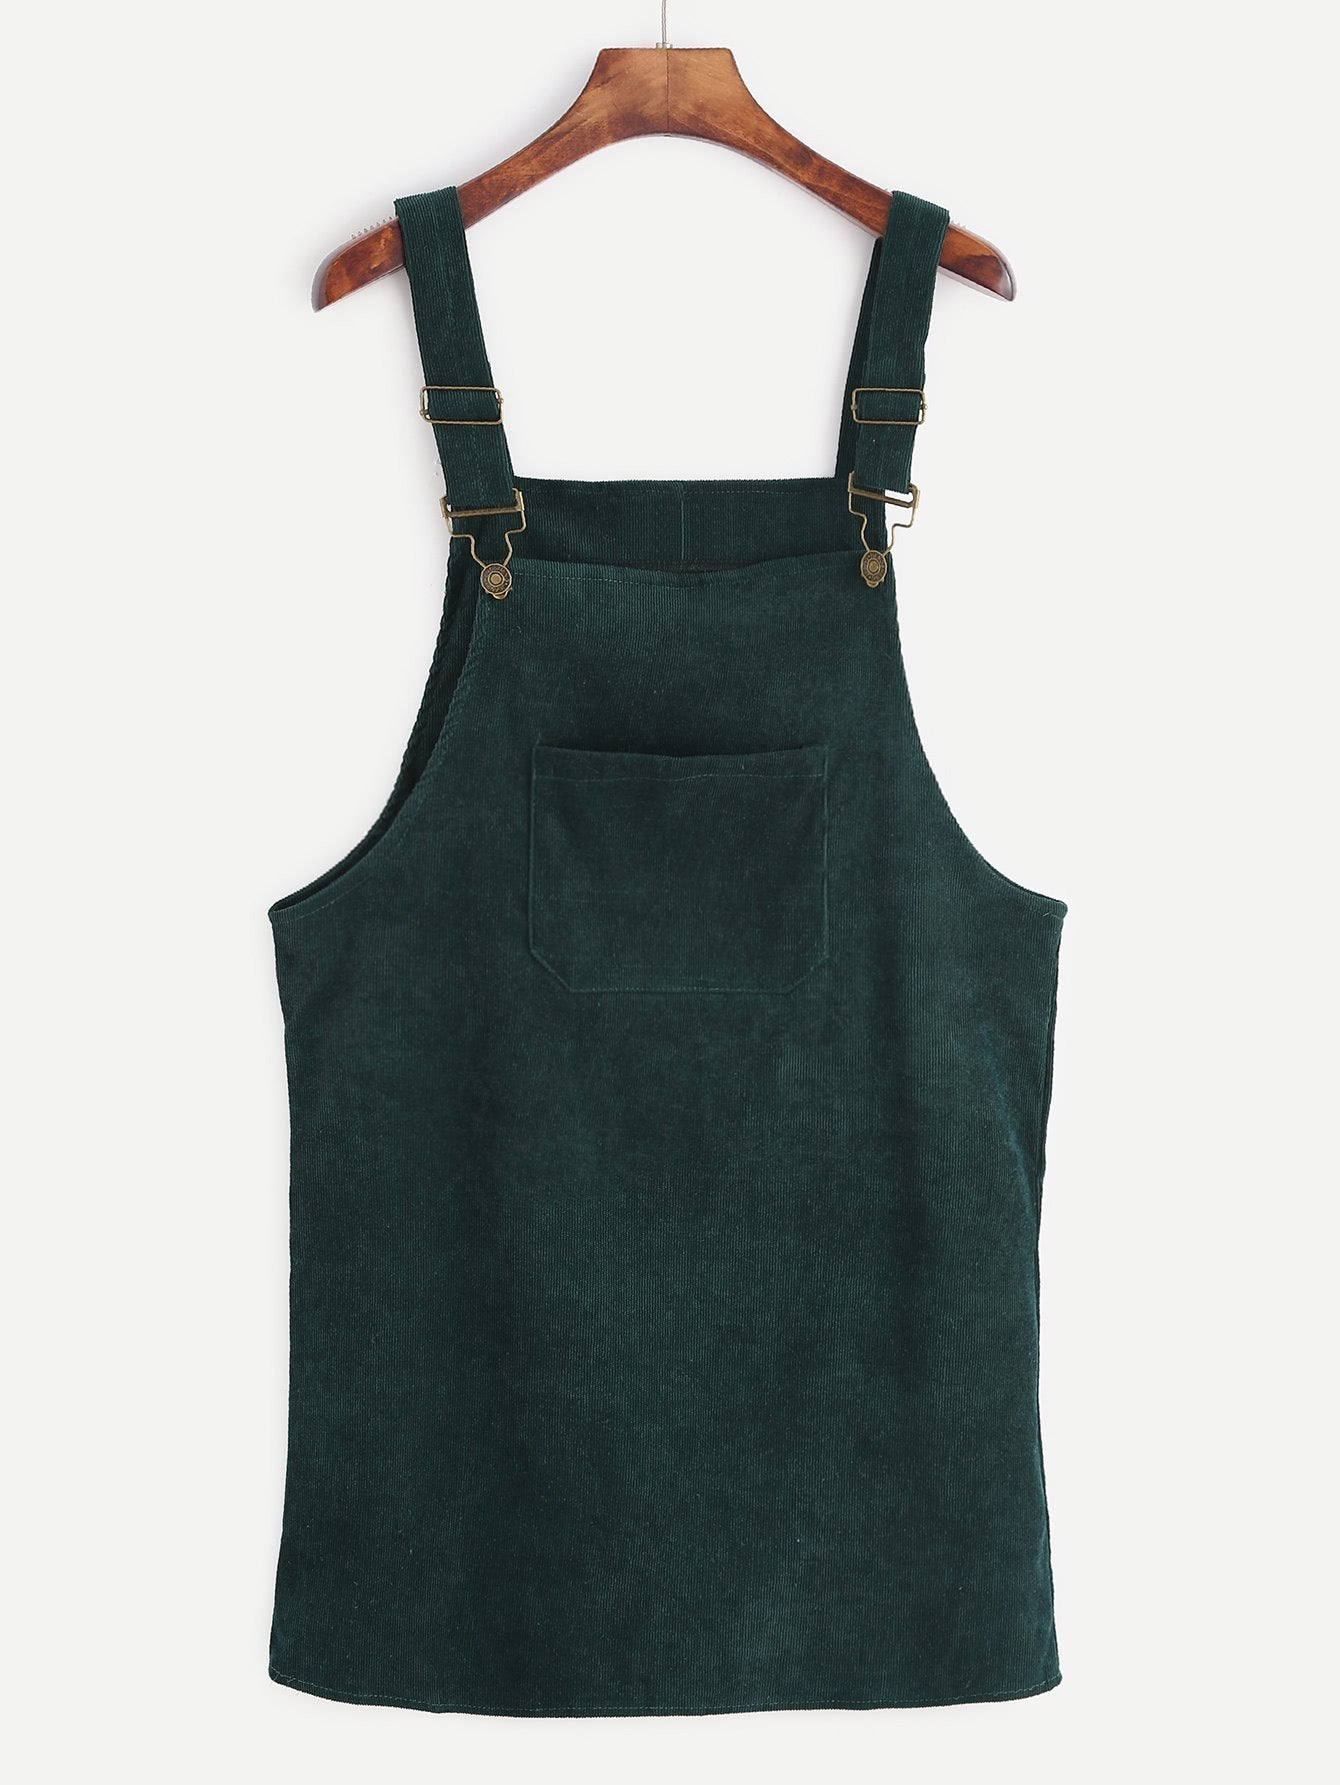 Corduroy Pinafore Dress - Forest Green